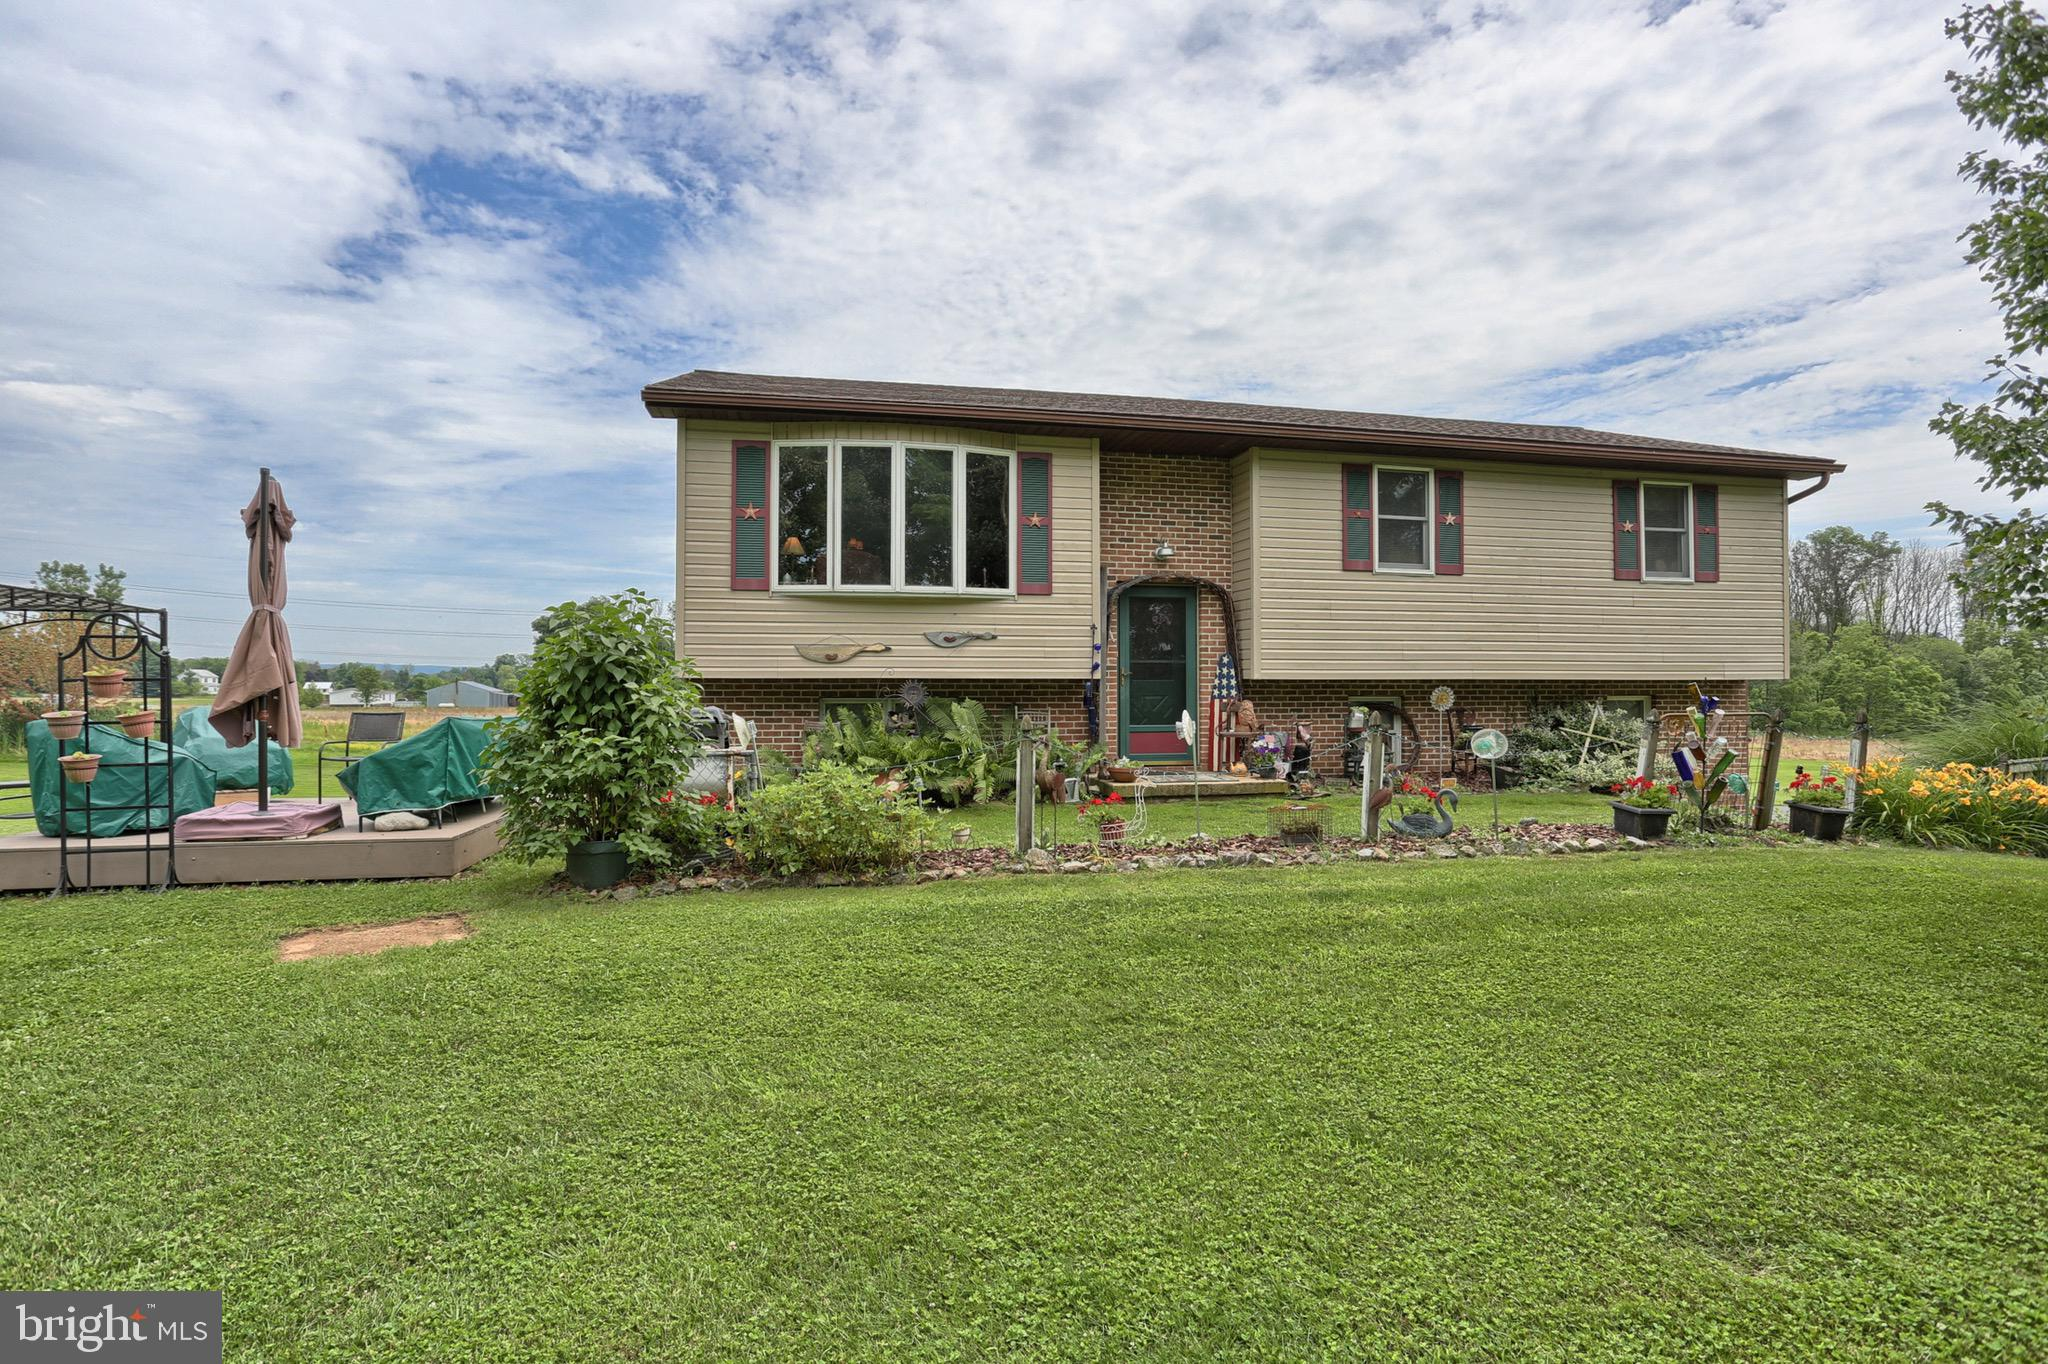 56 DECK ROAD, RICHLAND, PA 17087